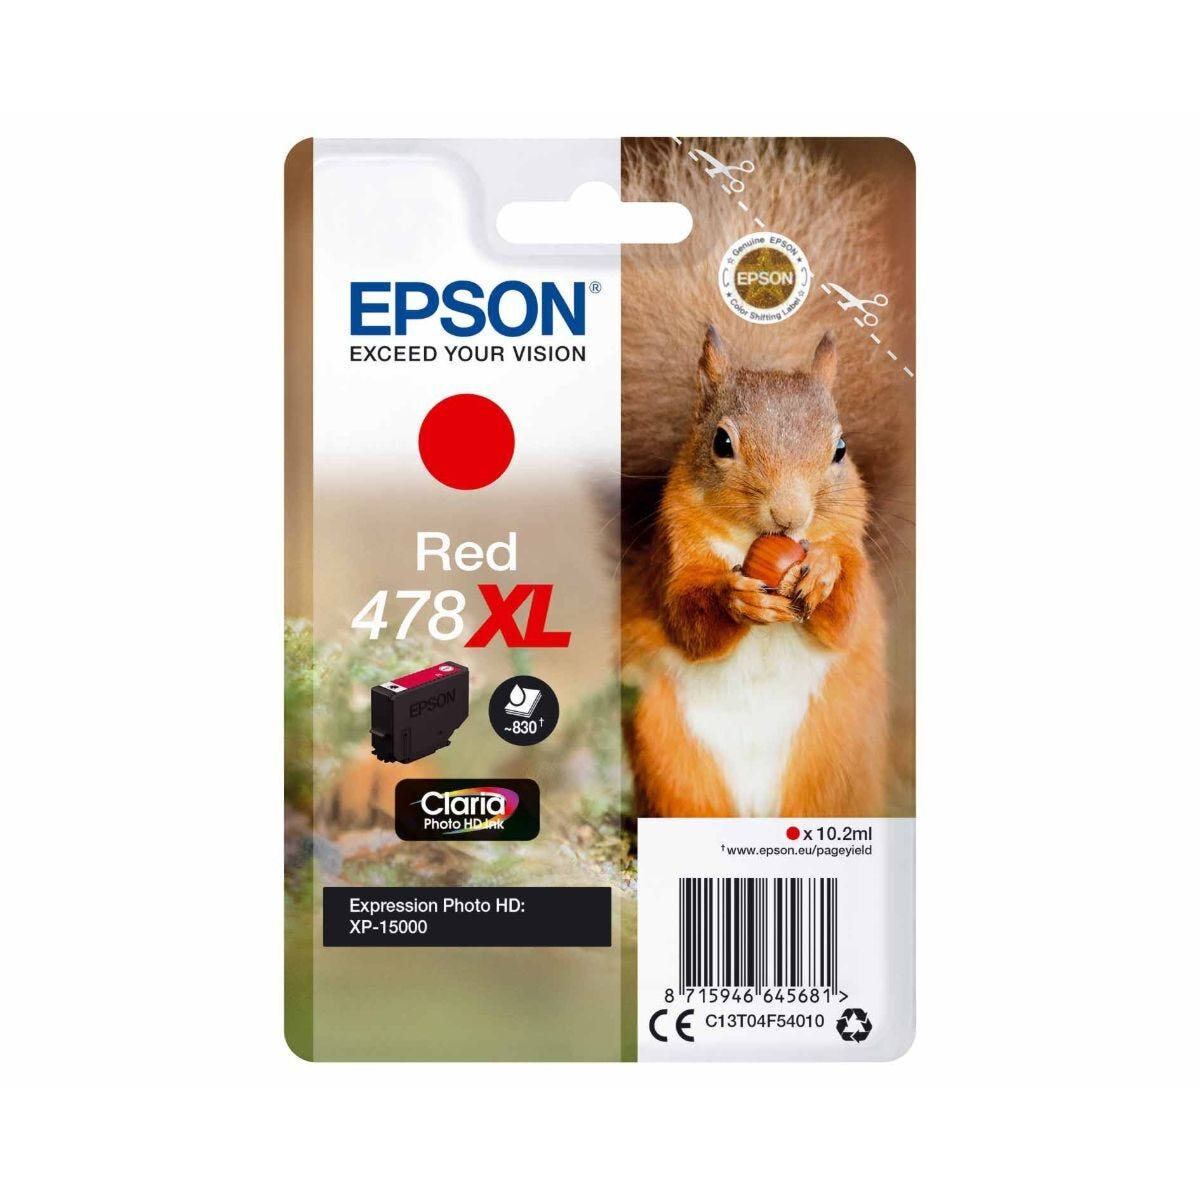 Epson 478XL Red Squirrel Original Ink Cartridge